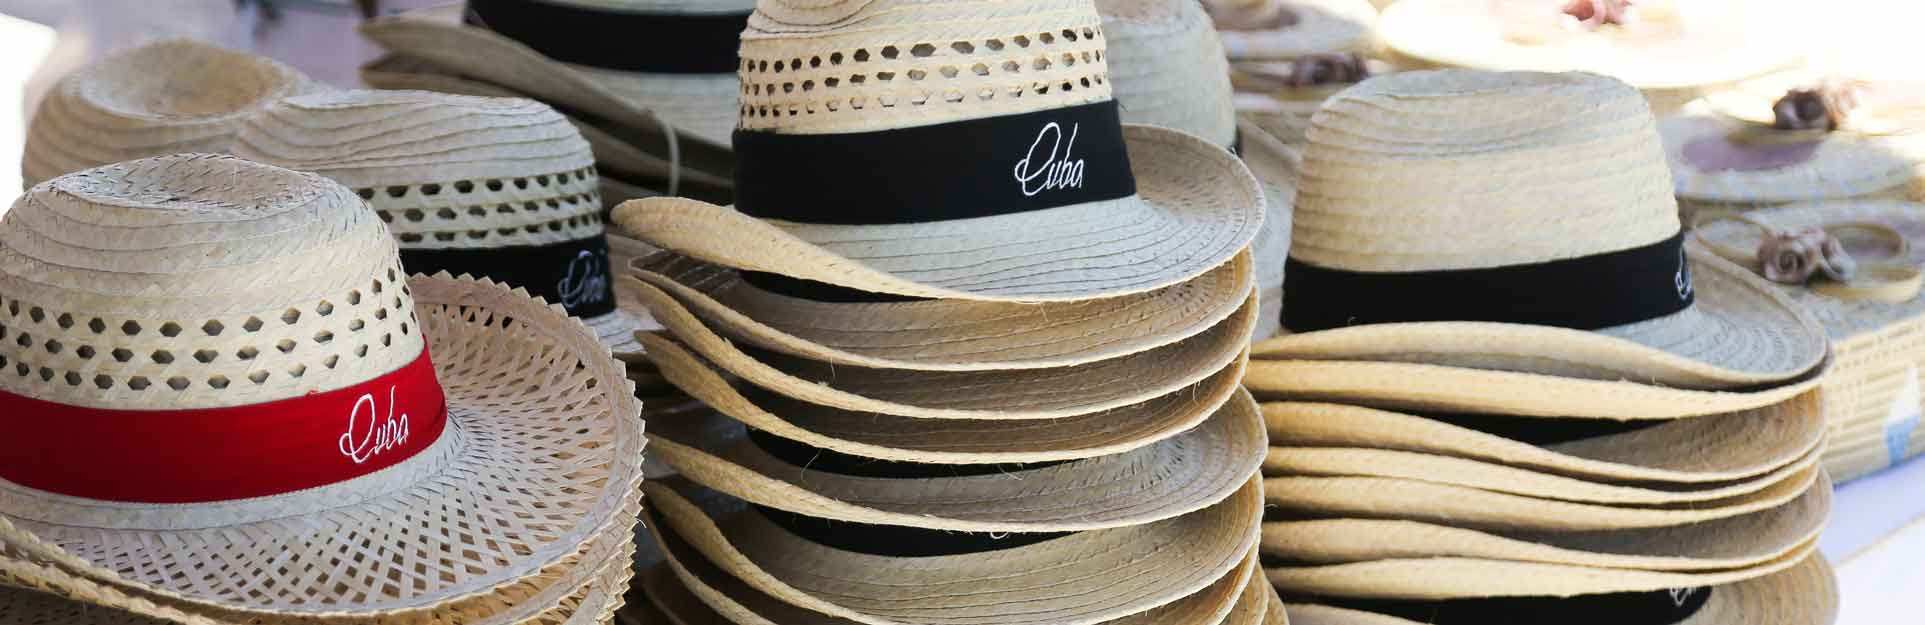 Travel Accessories, Hats, Cubatravel